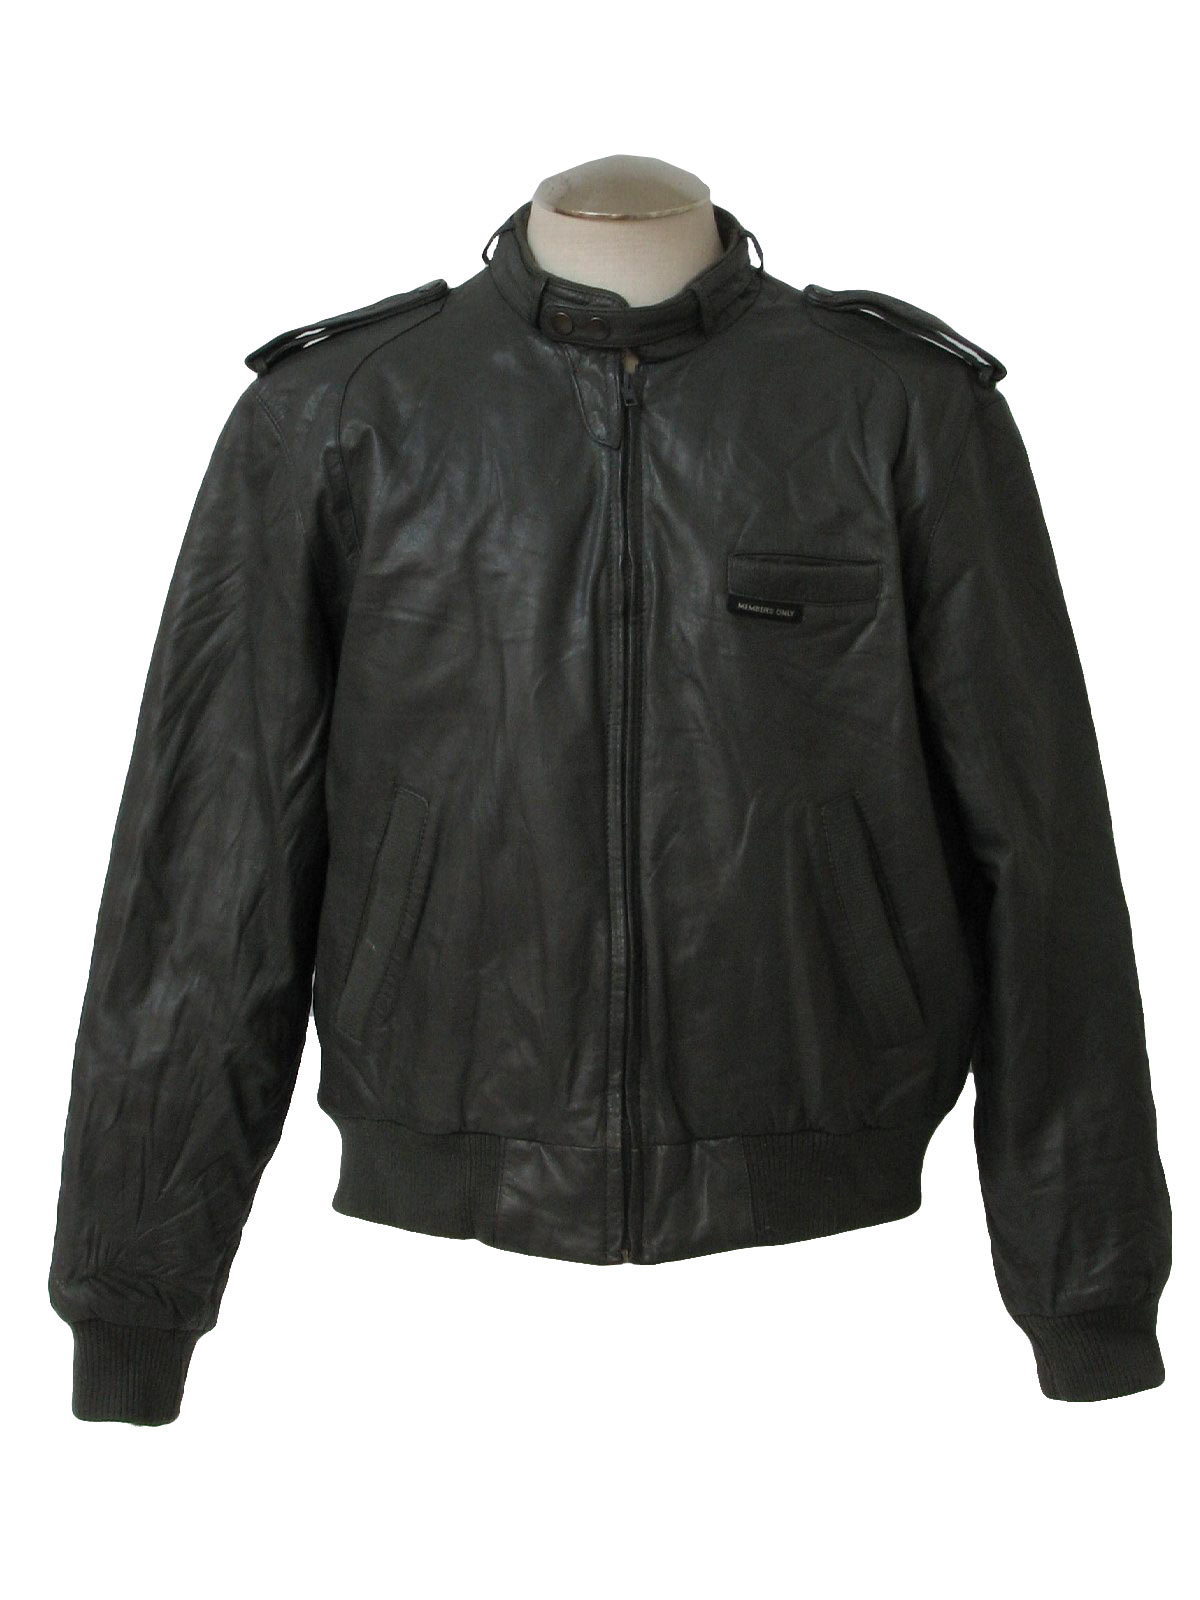 Only leather jackets